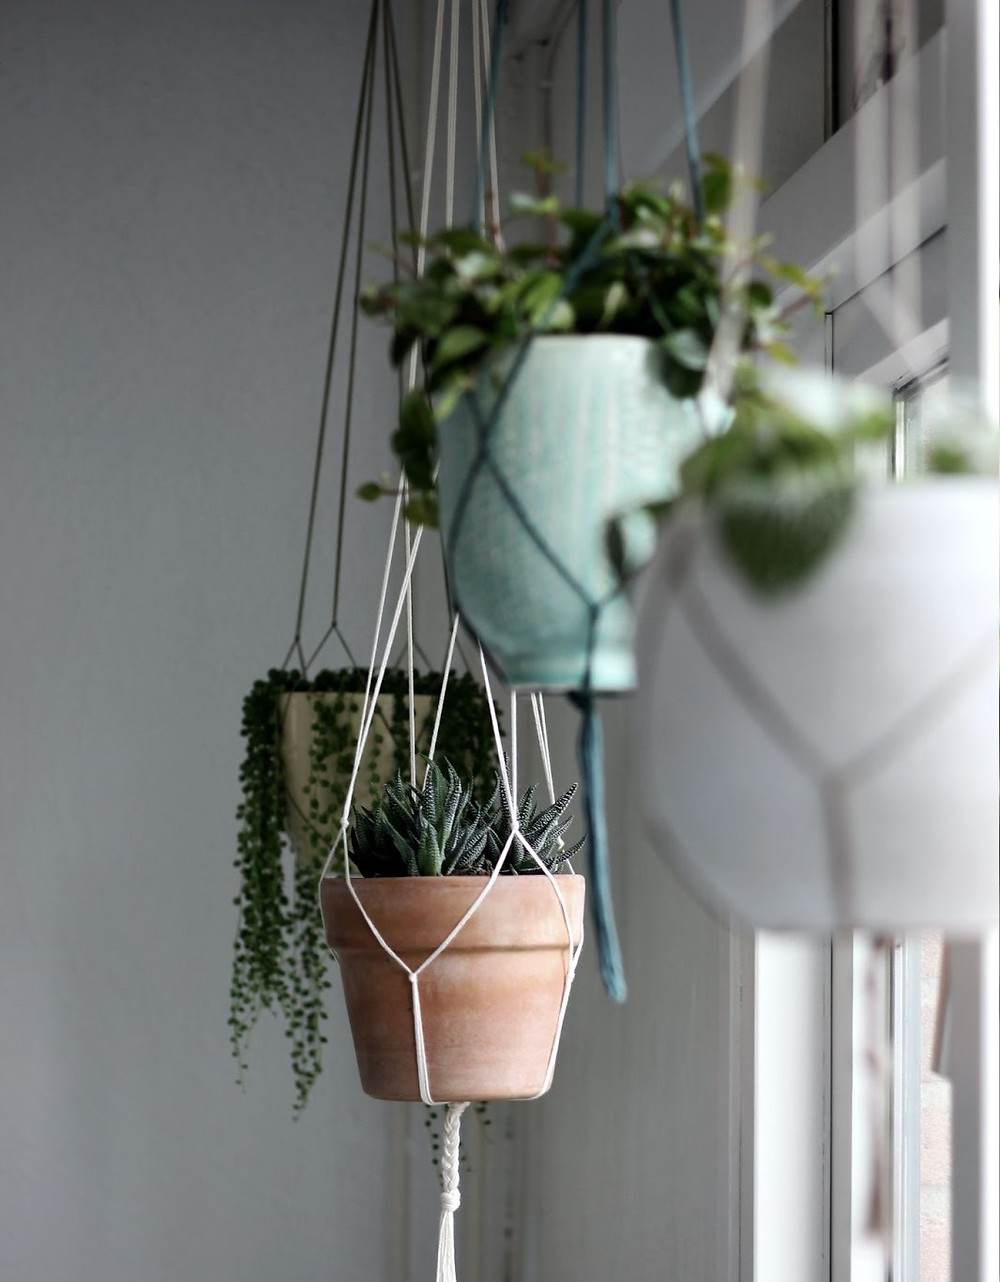 Using Planters and Greenery in Your Home in the Window